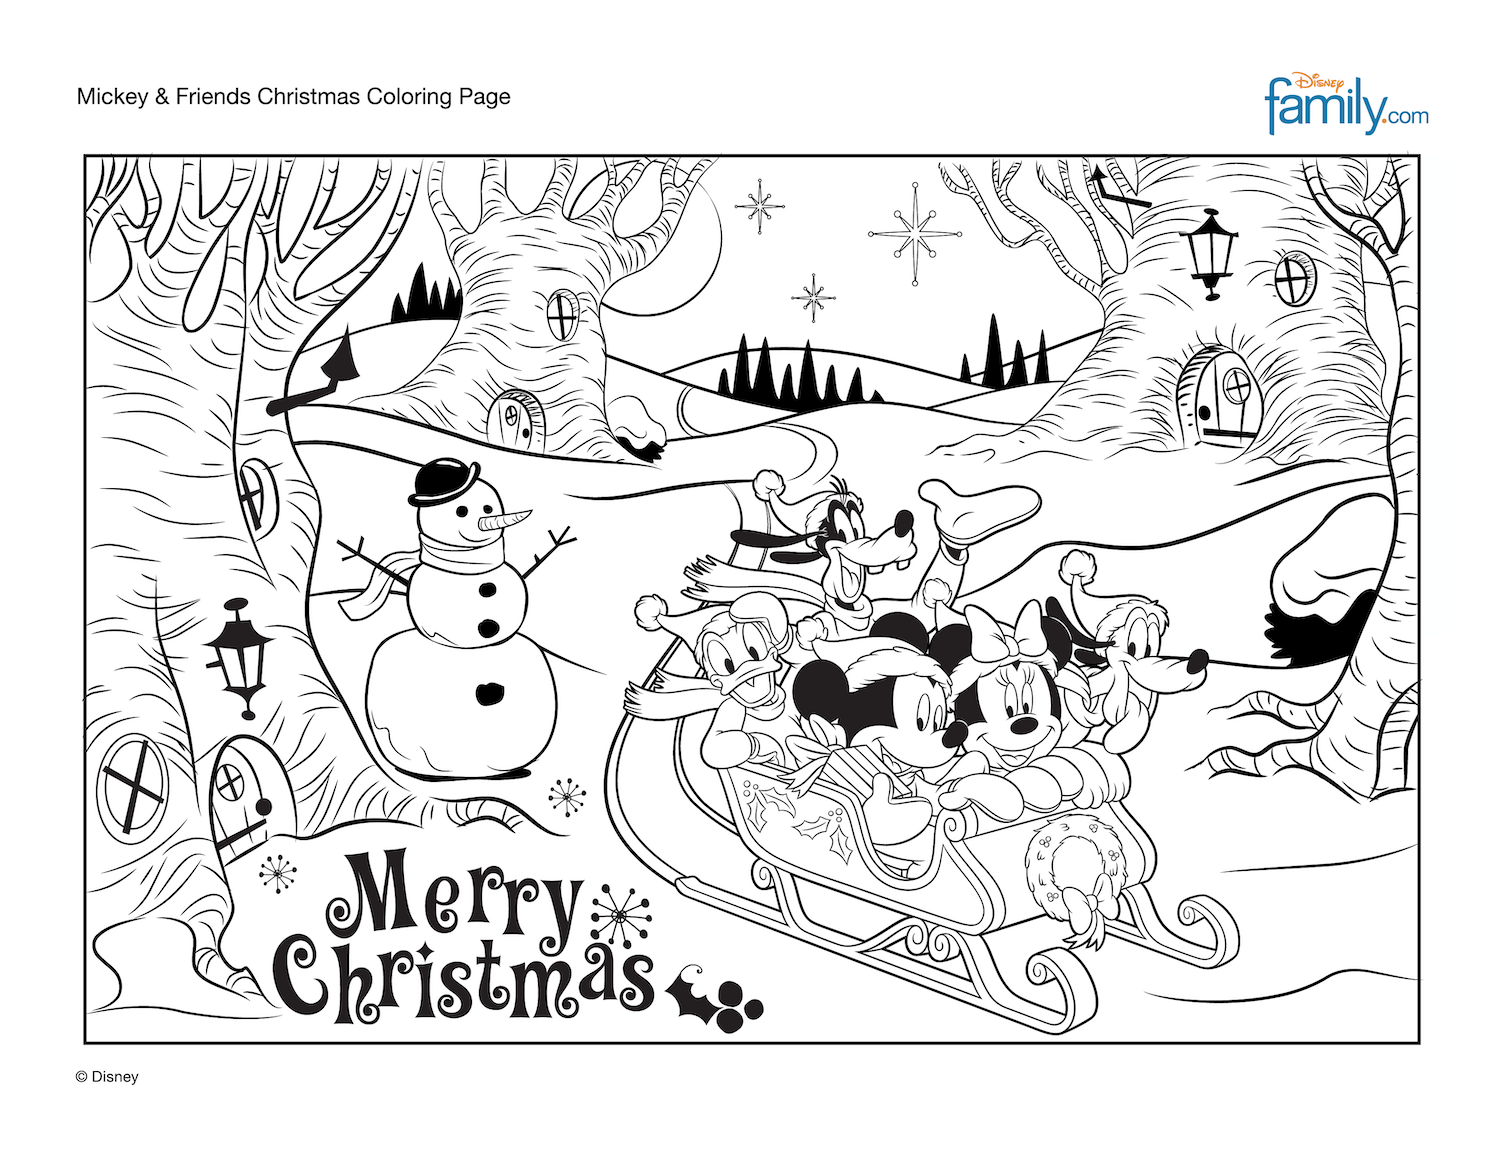 Christmas Coloring Pages Princess Coloring Pages Disney Princess Coloring Pages Printable Christmas Coloring Pages